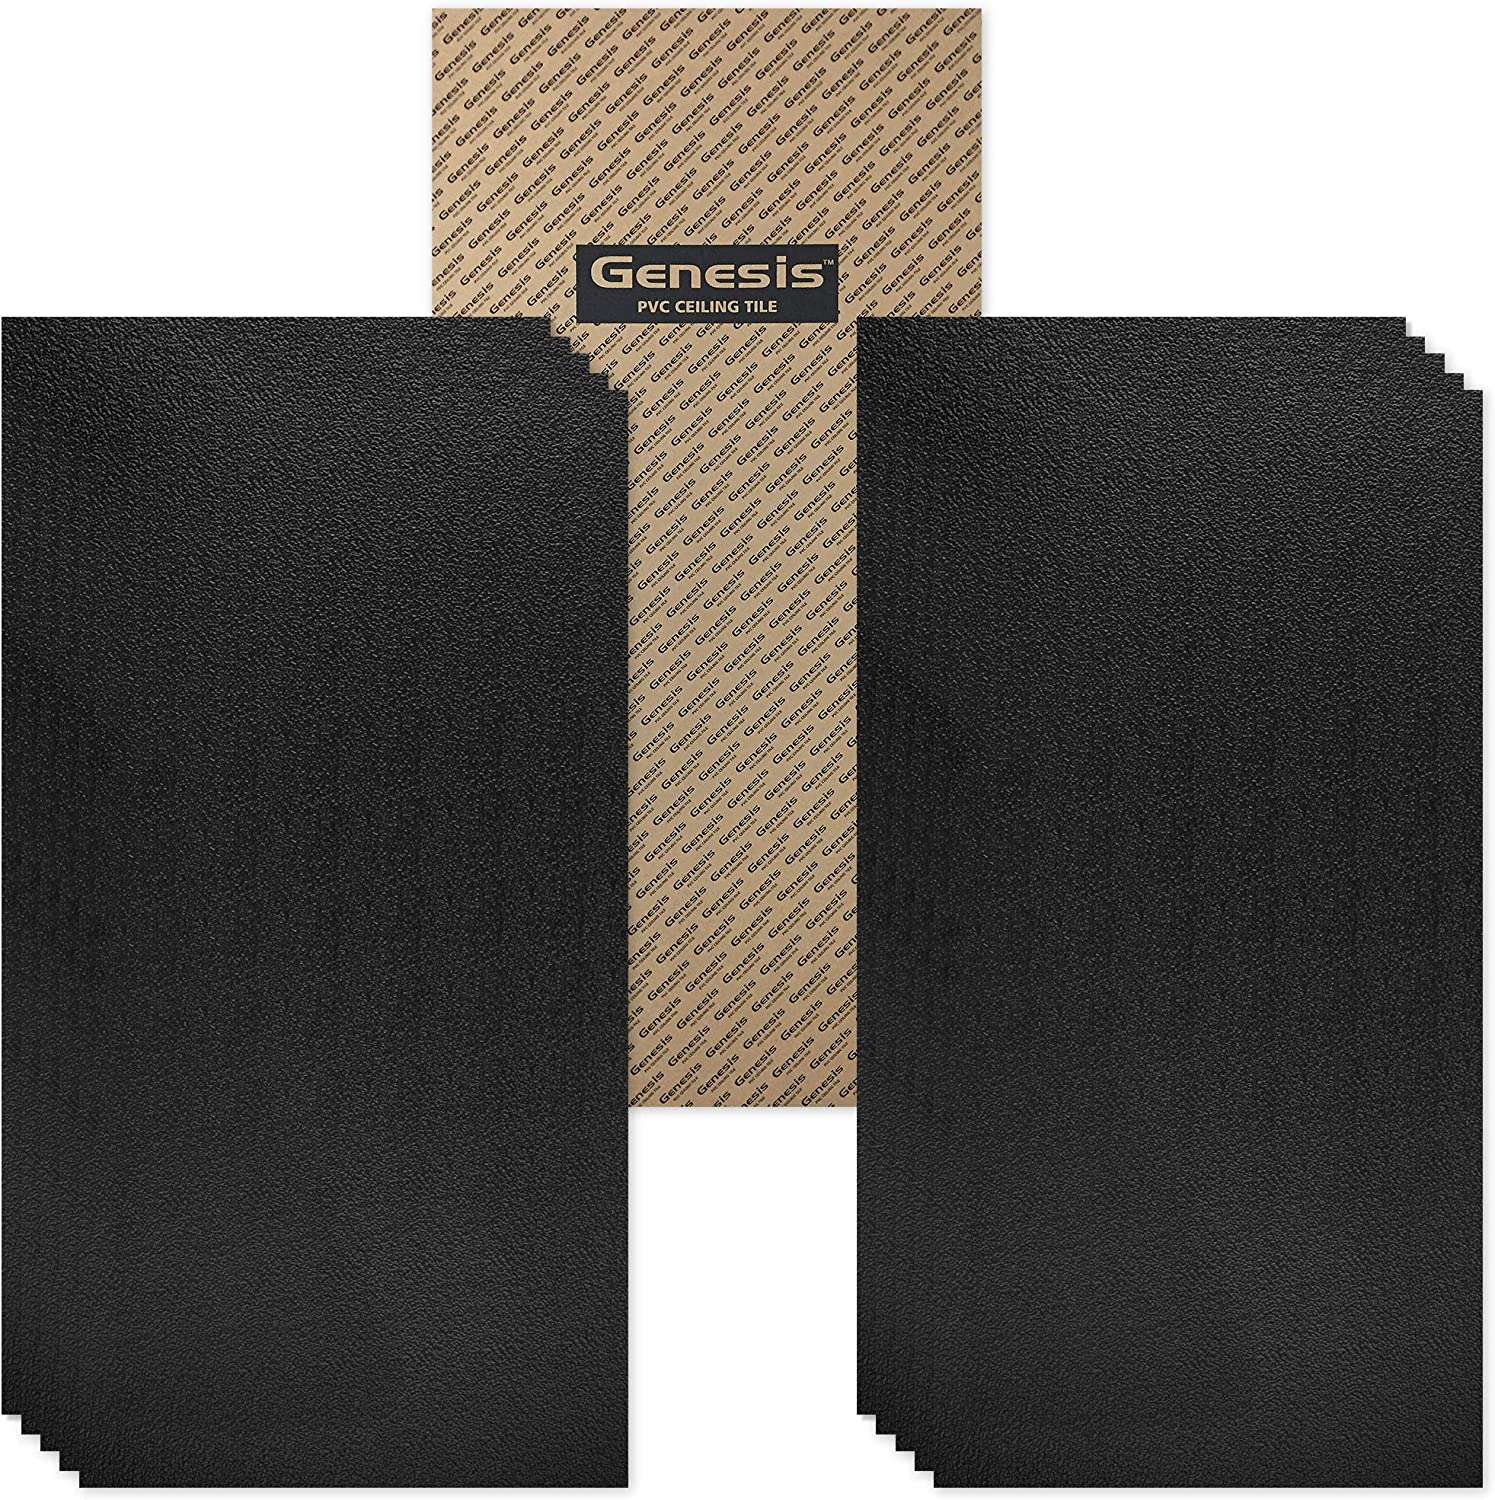 Genesis 2ft x 4ft Black Stucco Pro Ceiling Tiles - Easy Drop-in Installation – Waterproof, Washable and Fire-Rated - High-Grade PVC to Prevent Breakage - Package of 10 Tiles